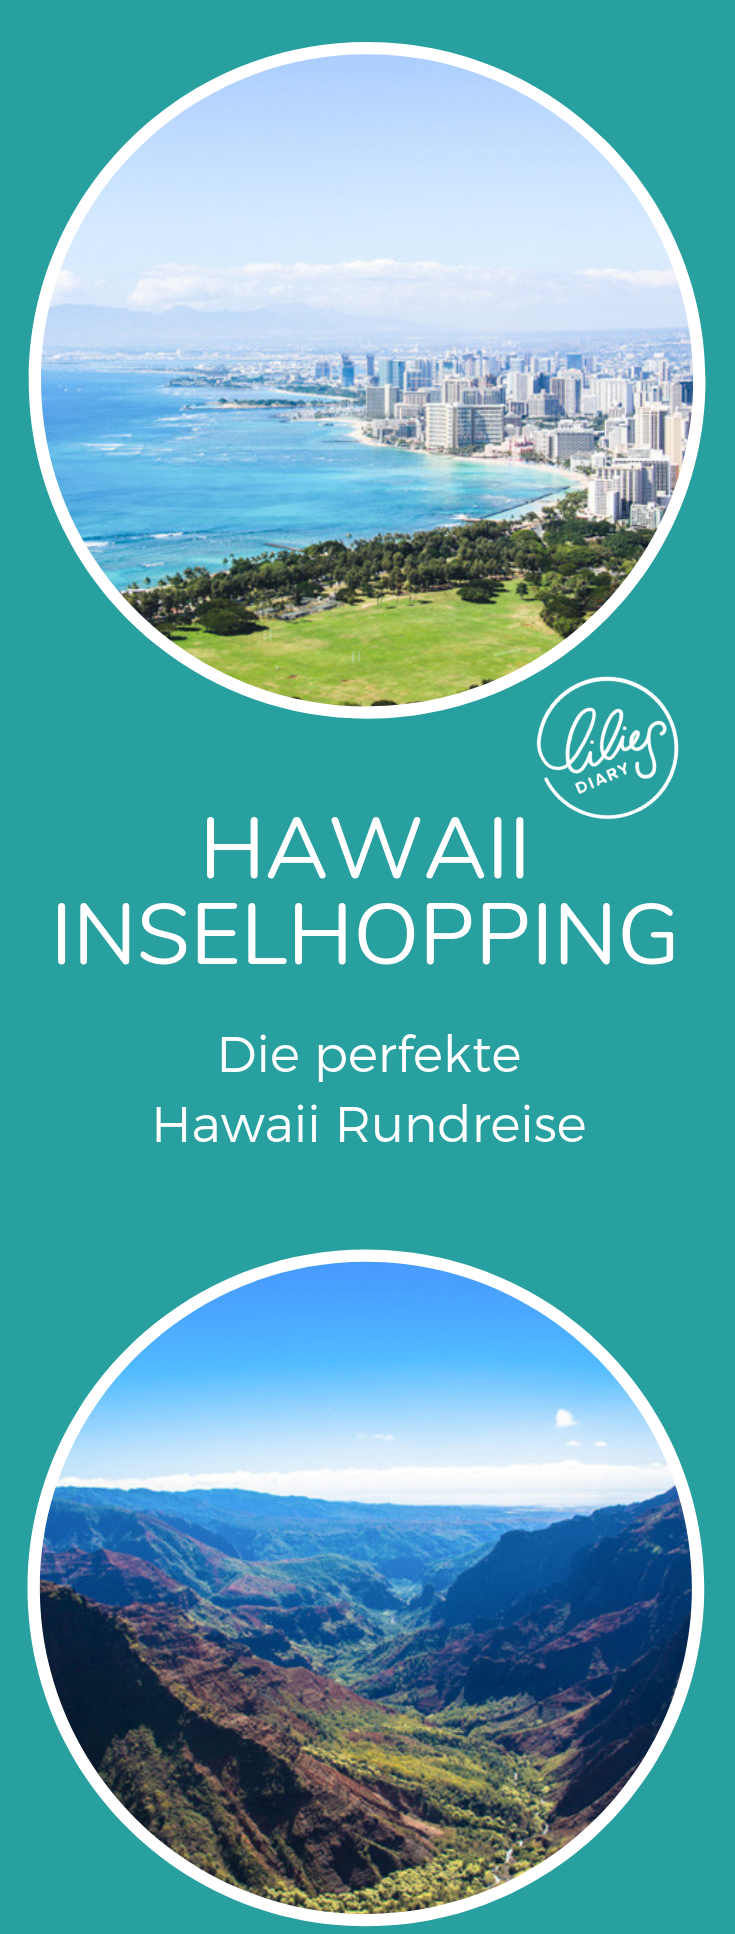 Hawaii Inselhopping